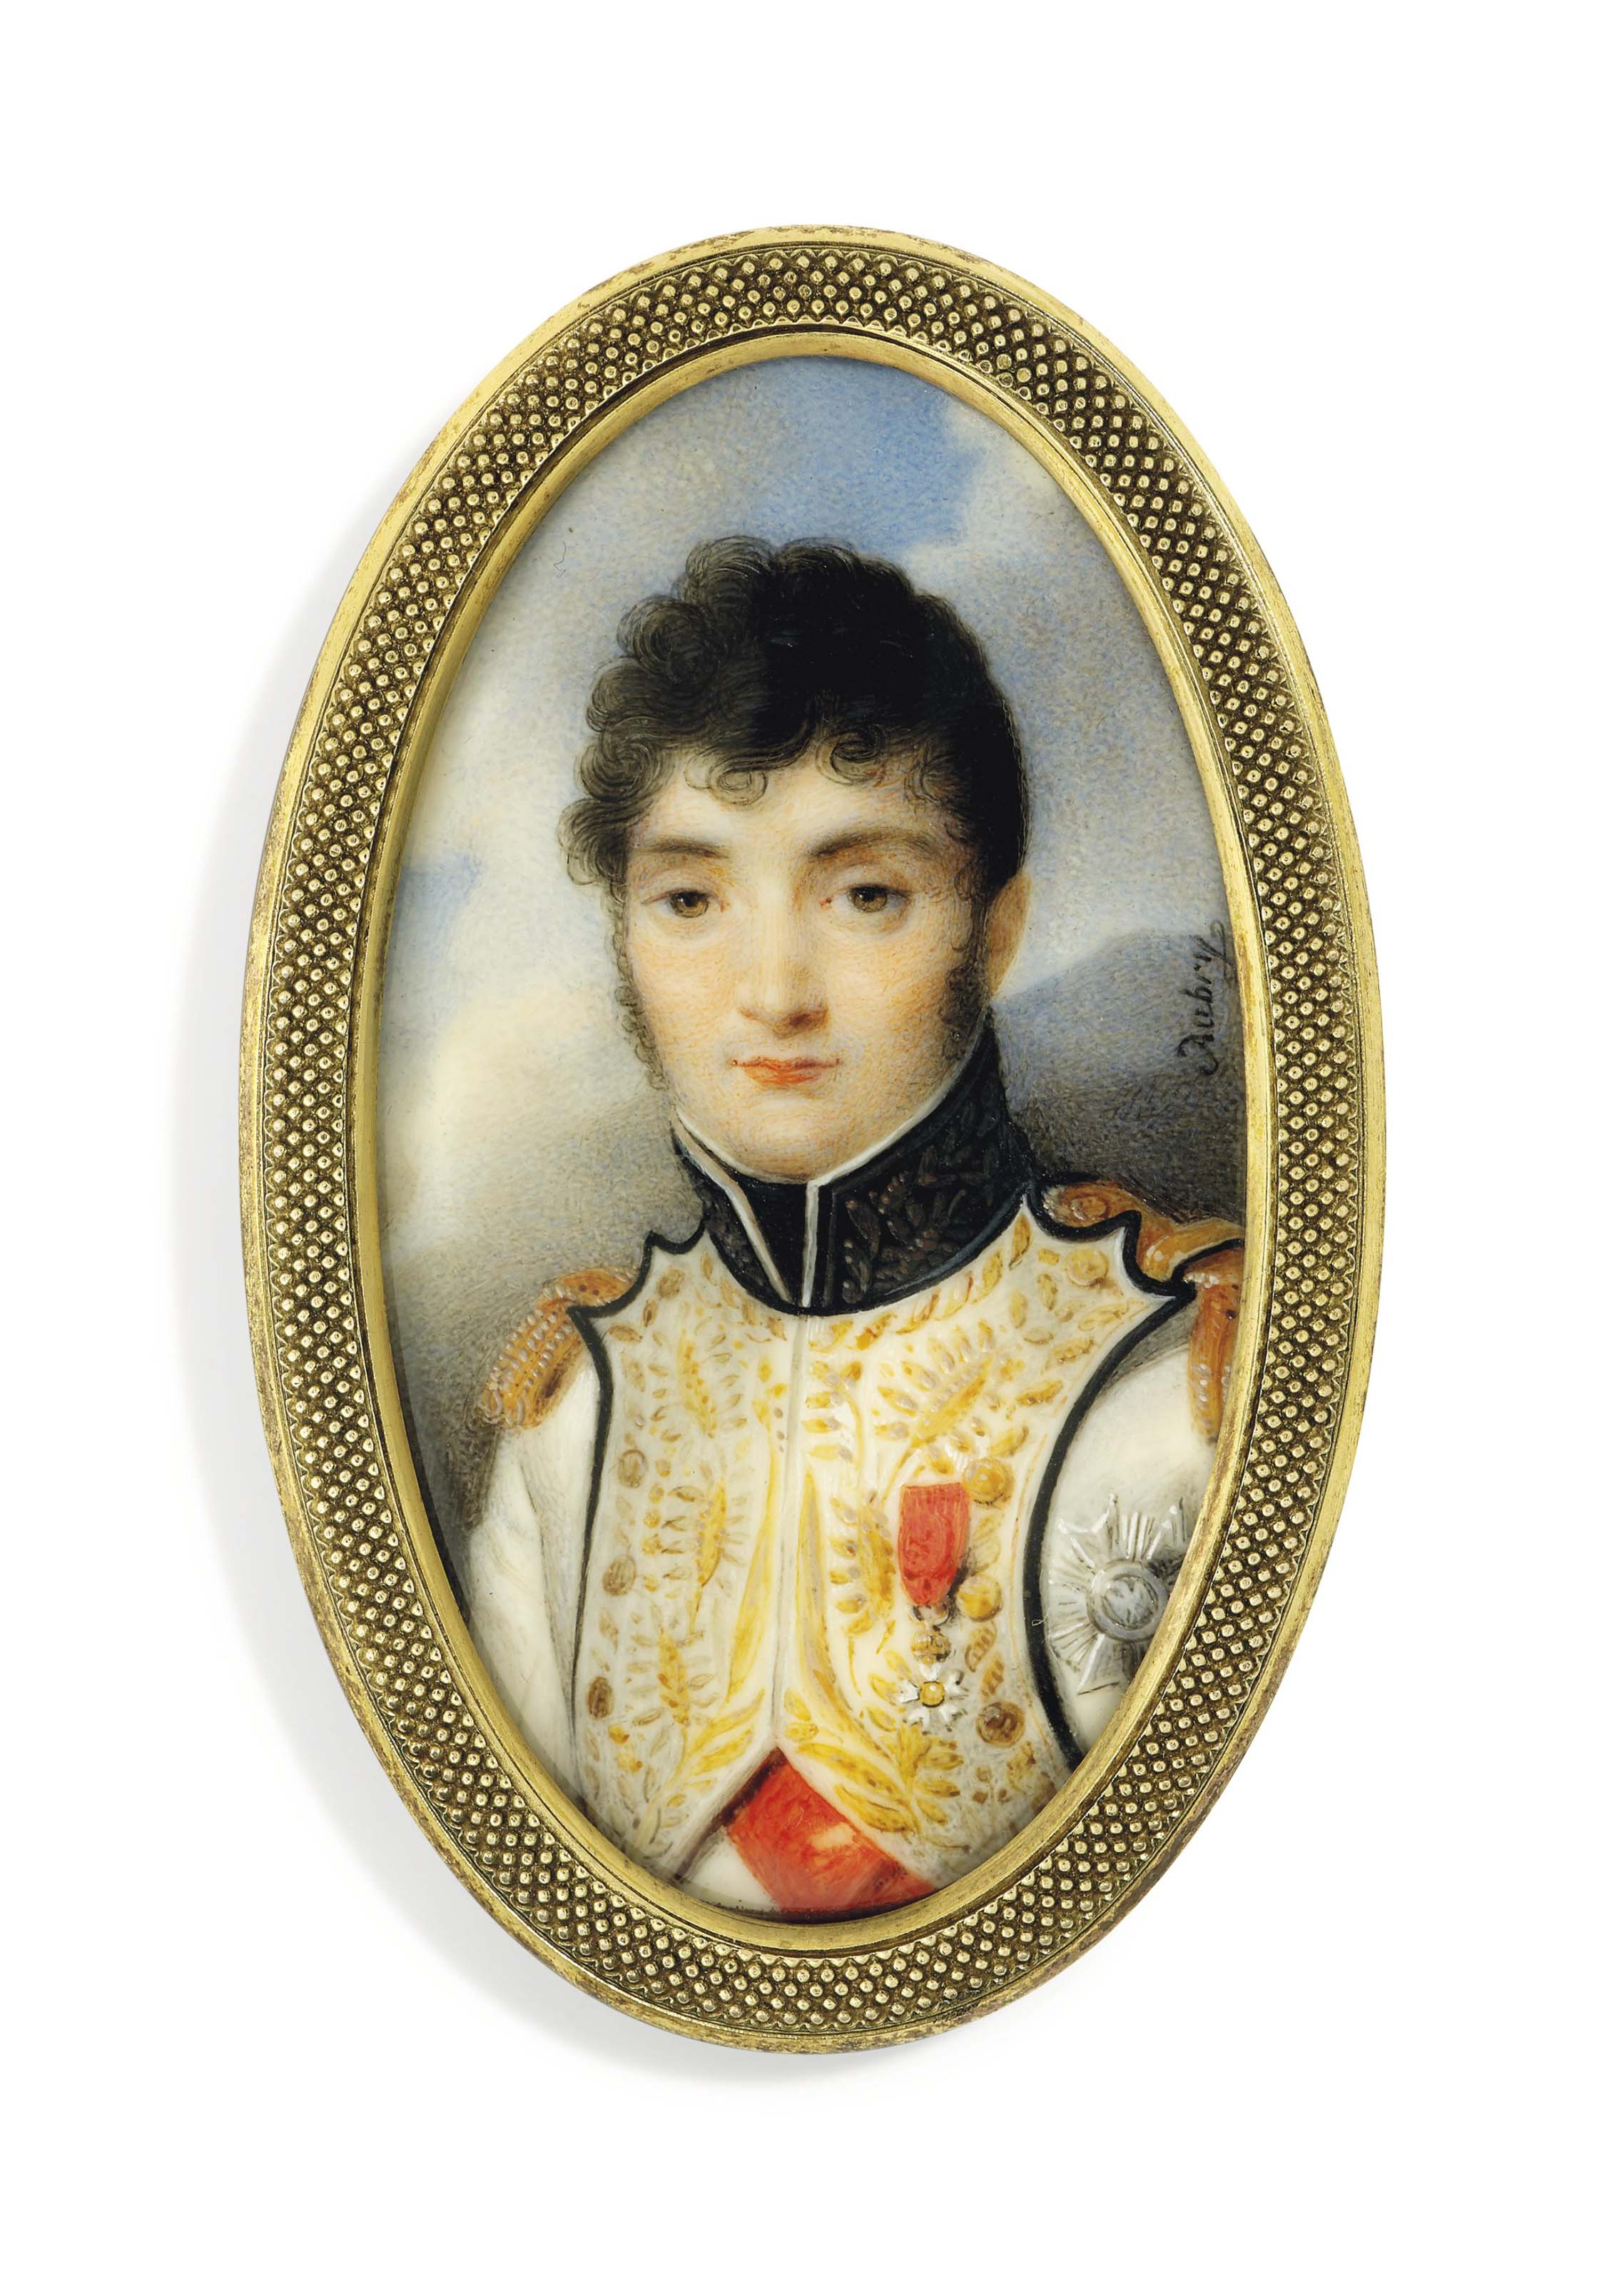 LOUIS-FRANÇOIS AUBRY (FRENCH, 1767-1851)